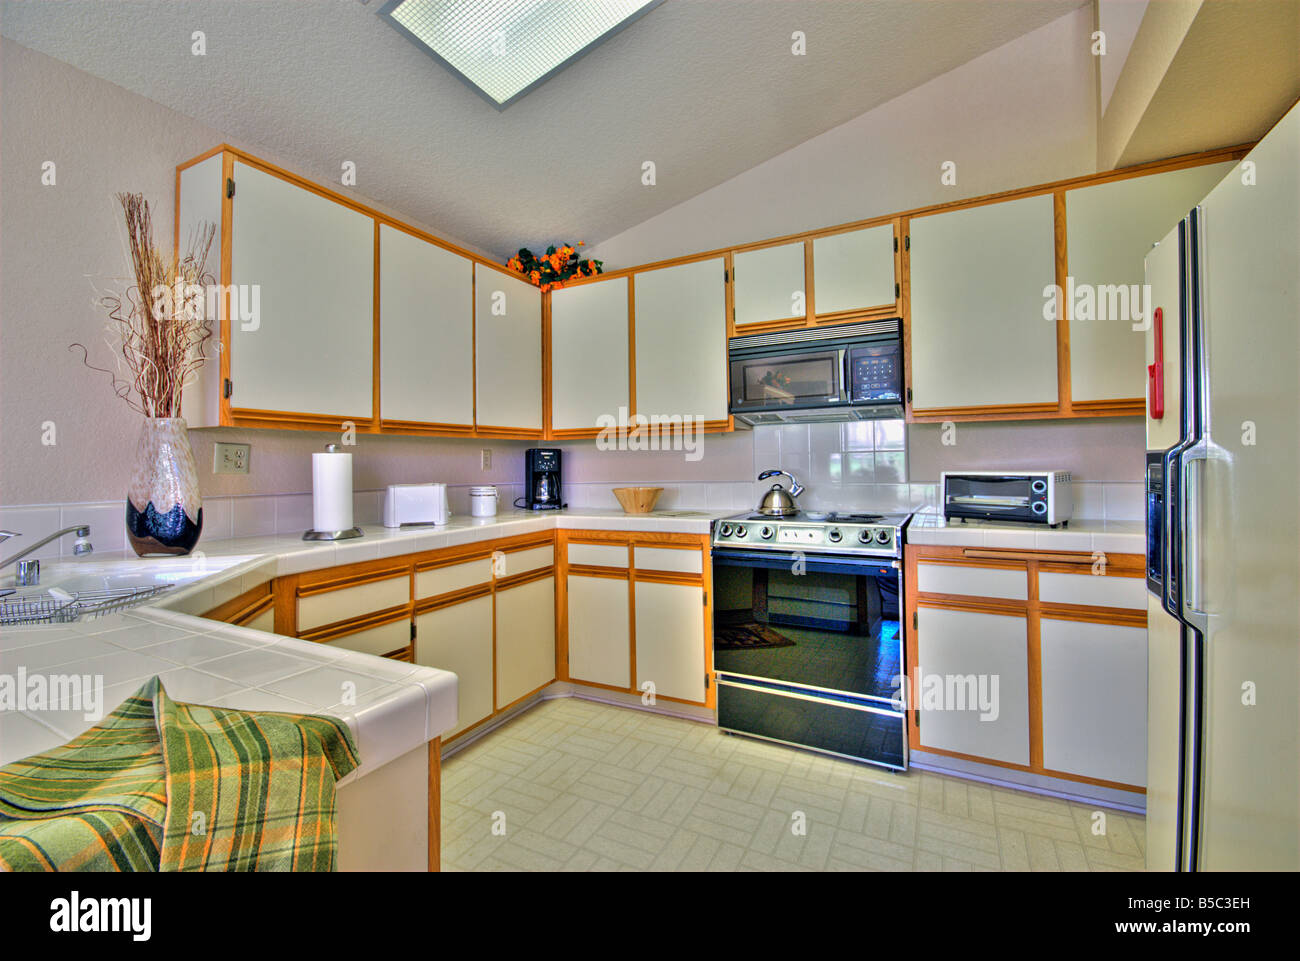 Oasis Country Club, Palm Desert Kitchen Interior White Wood Trim HDR  Lighting Panoramic House Home